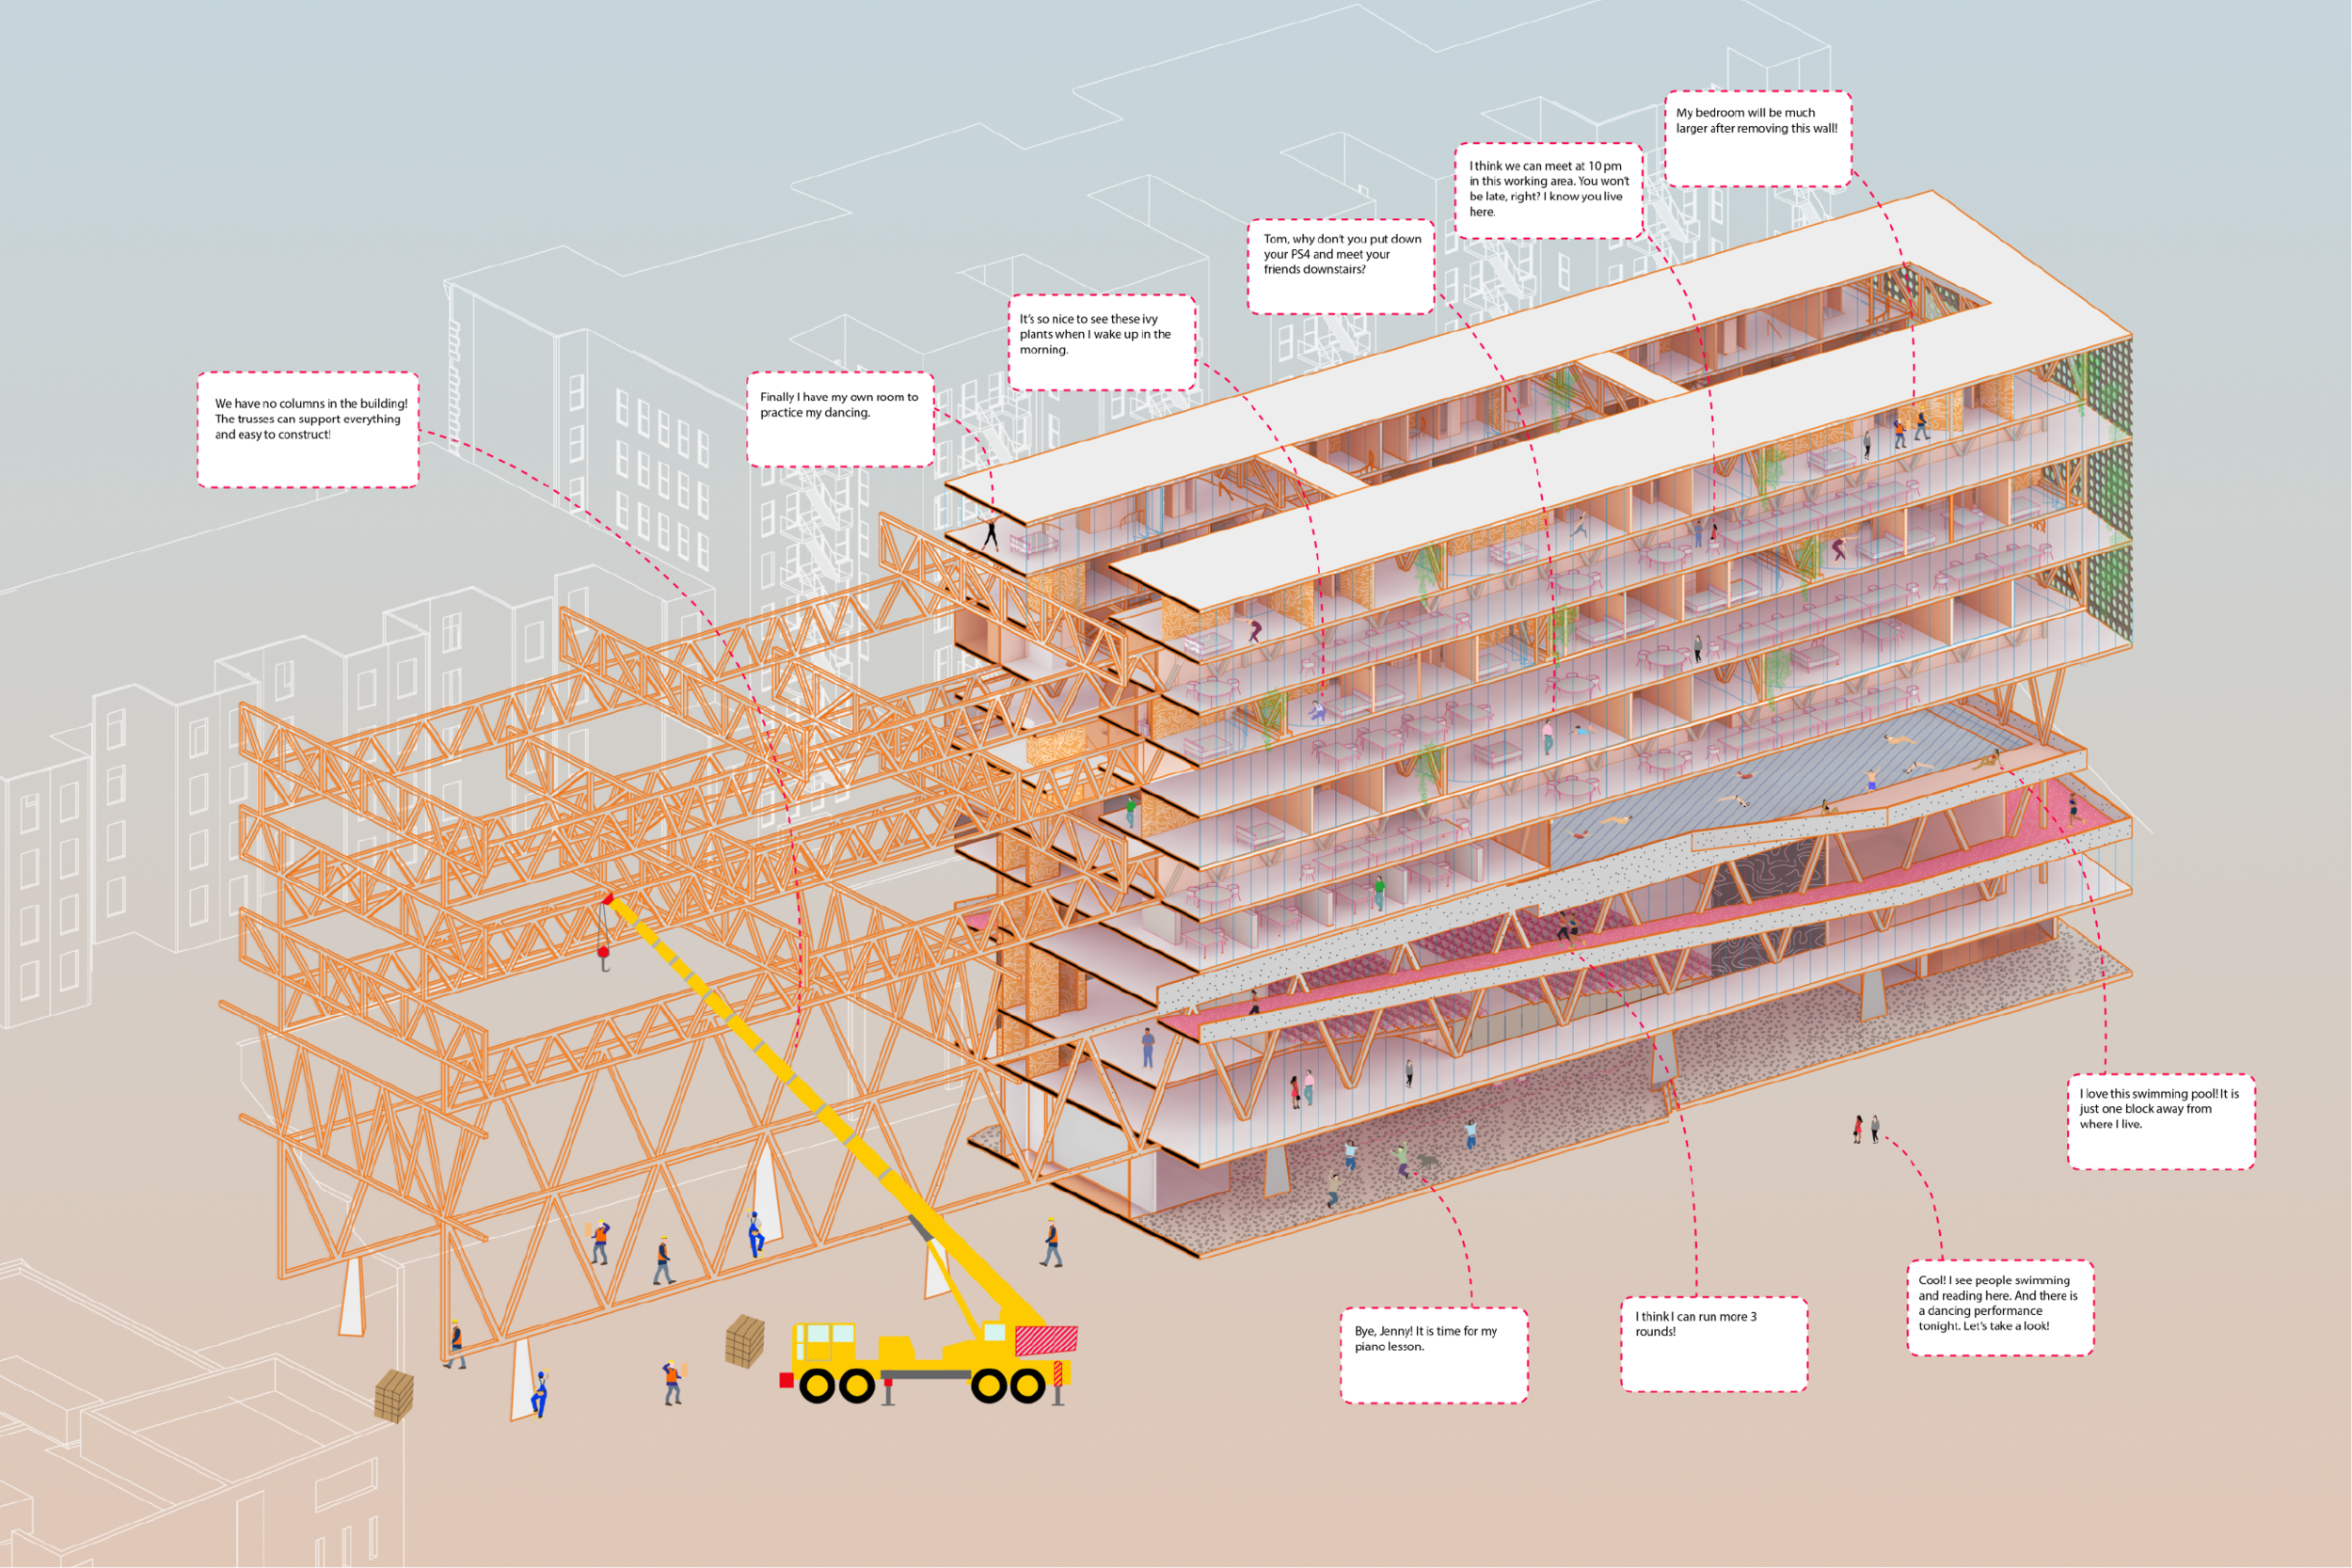 Harlem Redrawing - GSAPP Advanced Summer Studio  Crit:Hilary SampleDate:2017.5-2017.7   Team work with Zhenggu ZhouThis project is set in a New York Harlem liner nabourhood, where blocks are filled with old typed brick condos. The aim of this project is to create a new community typology, mainly a new layered truss structure with a gandient from large span at the bottom changing to smaller span on the top. Hense, different programs are allowed to fixed with proper freedom, and the hierarchy permits the openess to the public and the privacy of the dwellers. On the top, living units also share a shared maker space, as well as a flexible unit configuration allowing for future change.